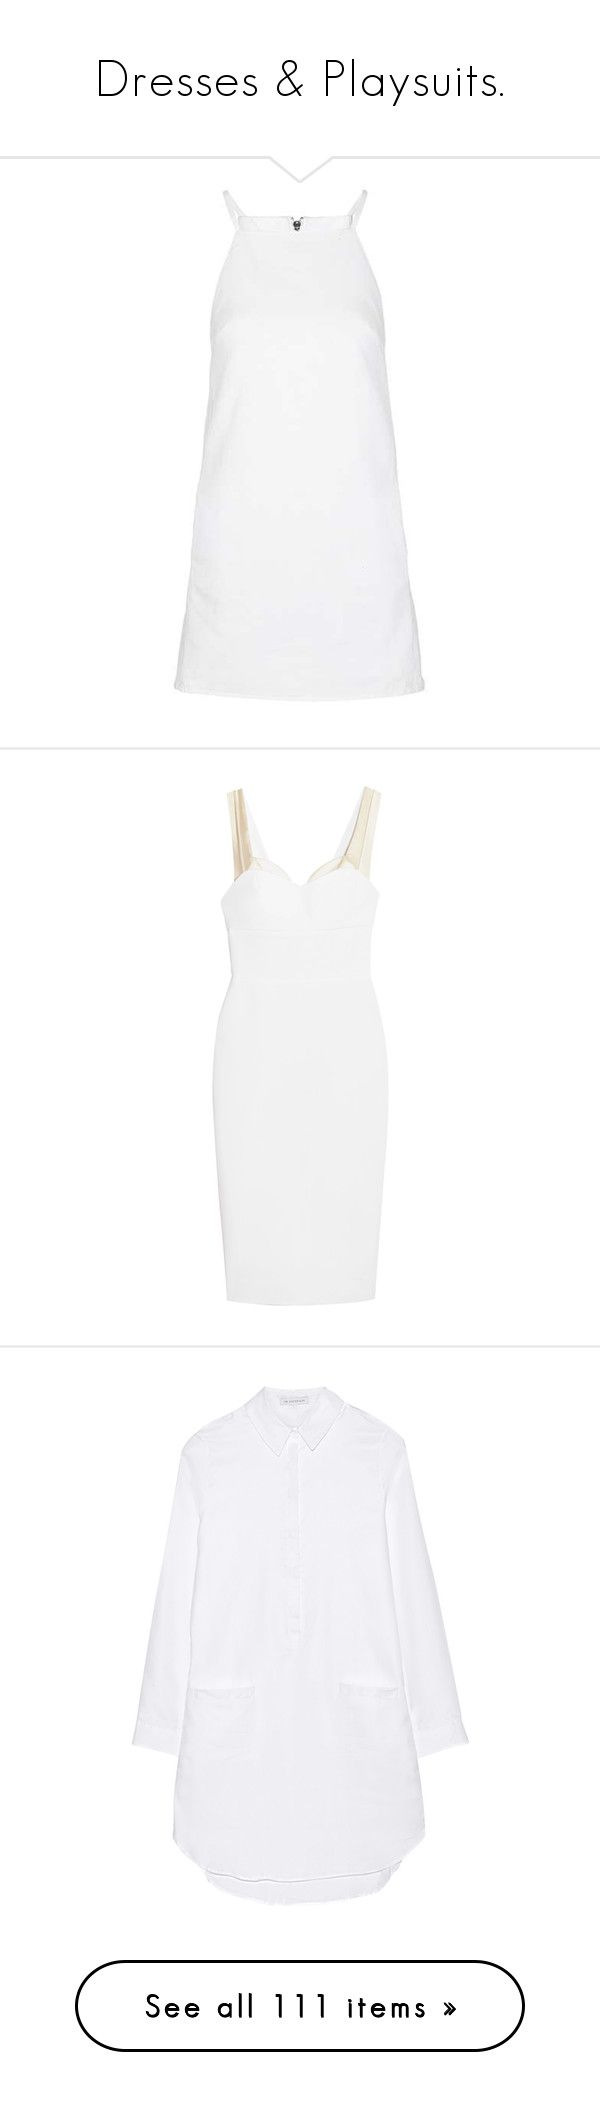 """Dresses & Playsuits."" by angie-5soslm ❤ liked on Polyvore featuring dresses, vestidos, topshop, short mini dress, white mini dress, mini dress, white colour dress, denim dresses, victoria beckham and sweetheart neckline dress"